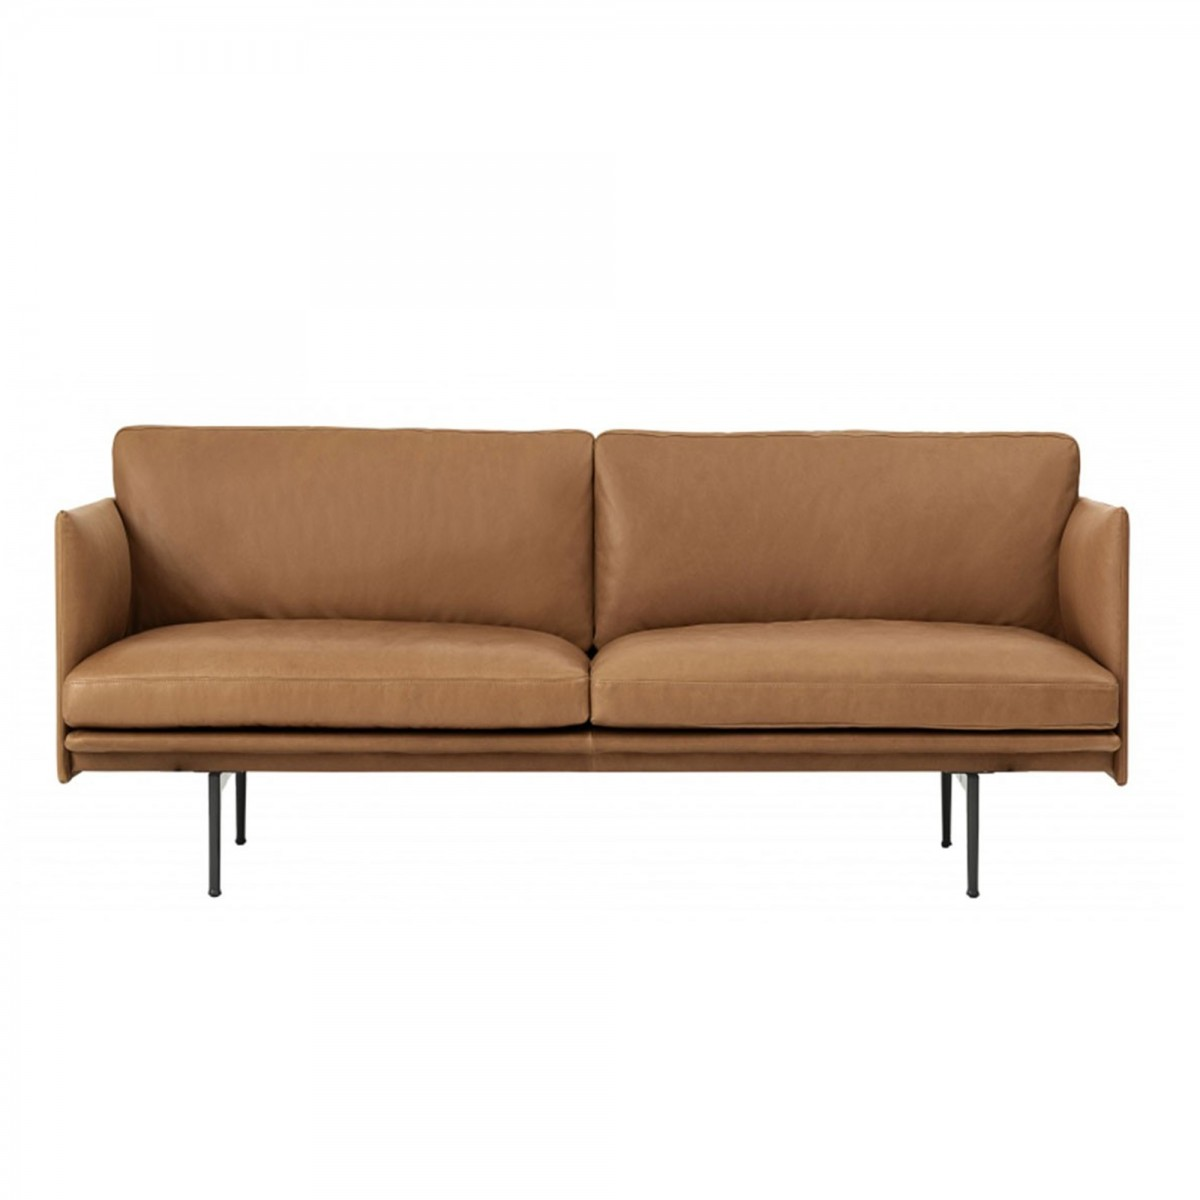 Interio Bettsofa Fiftynine Couch Fr Seater Sofa In Savoy Semianiline Leather Platin Black N